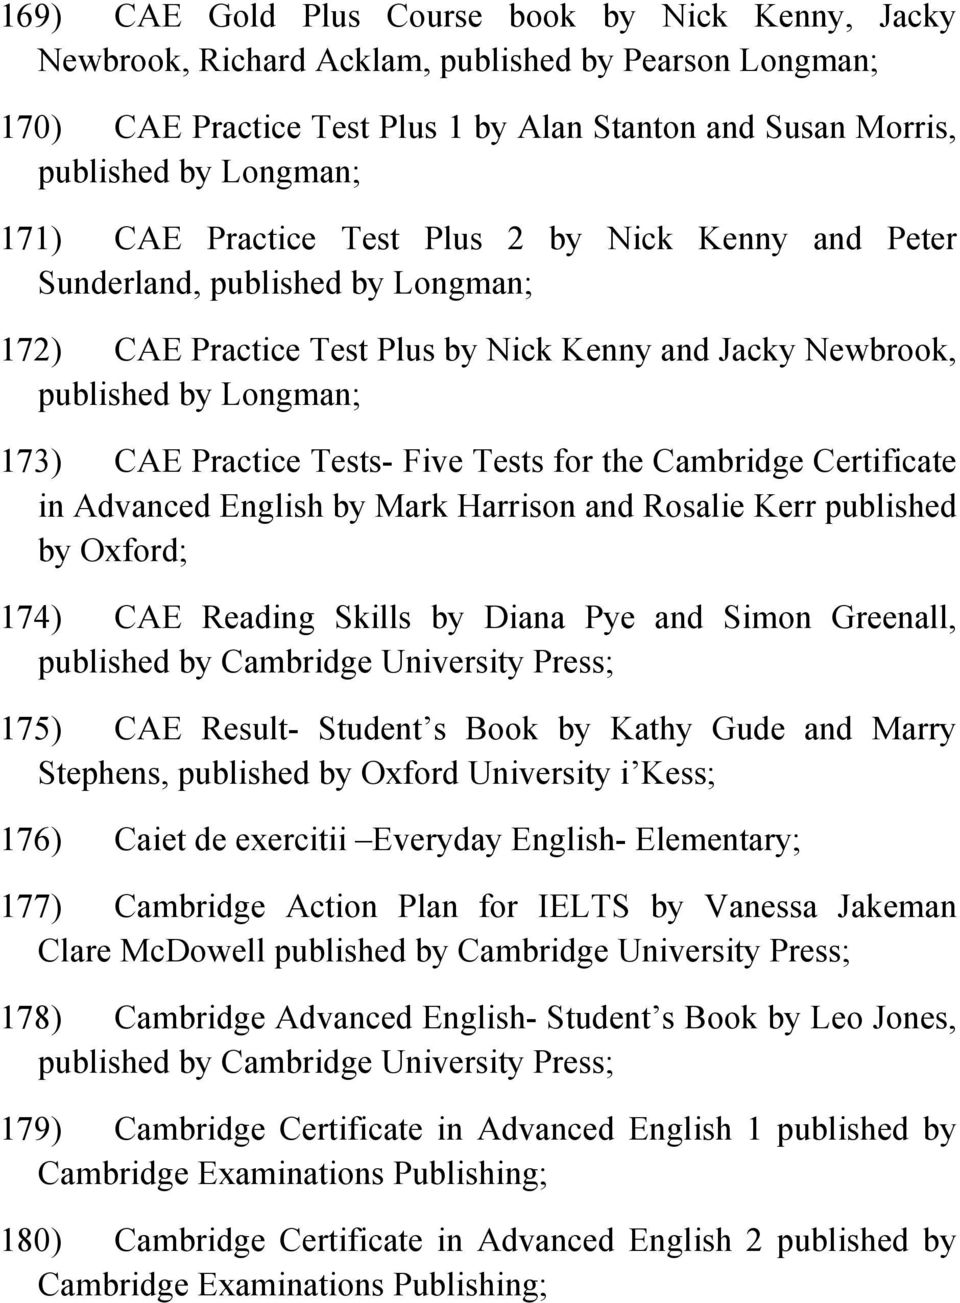 Tests For The Cambridge Certificate In Advanced English By Mark Harrison And Rosalie Kerr Published